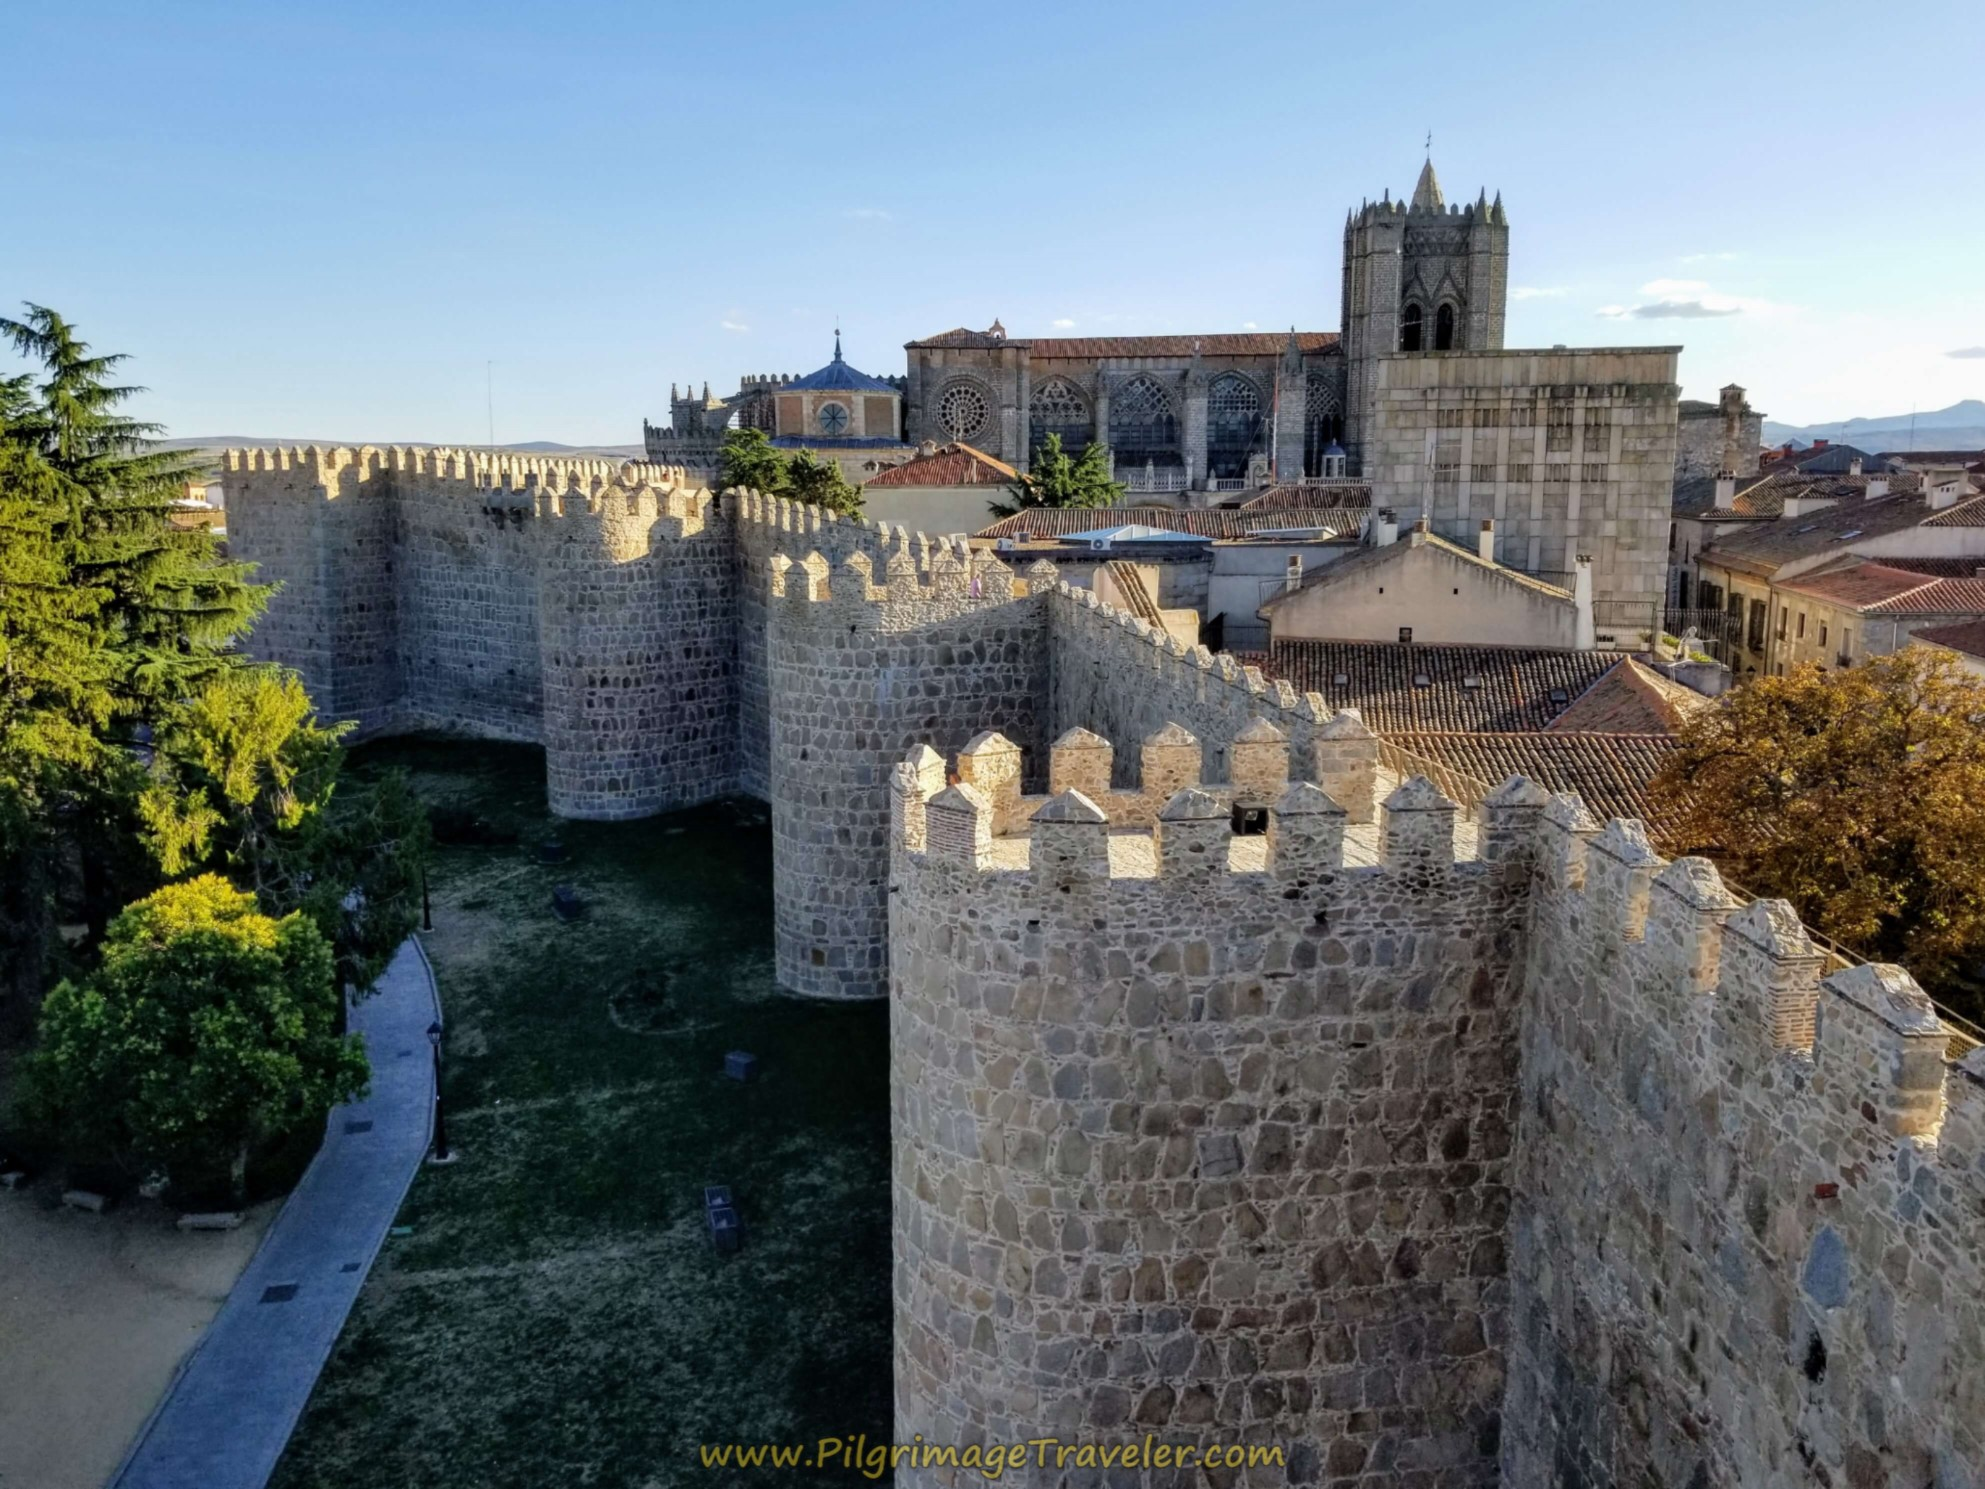 A view of the Ávila Cathedral from a wall tower.